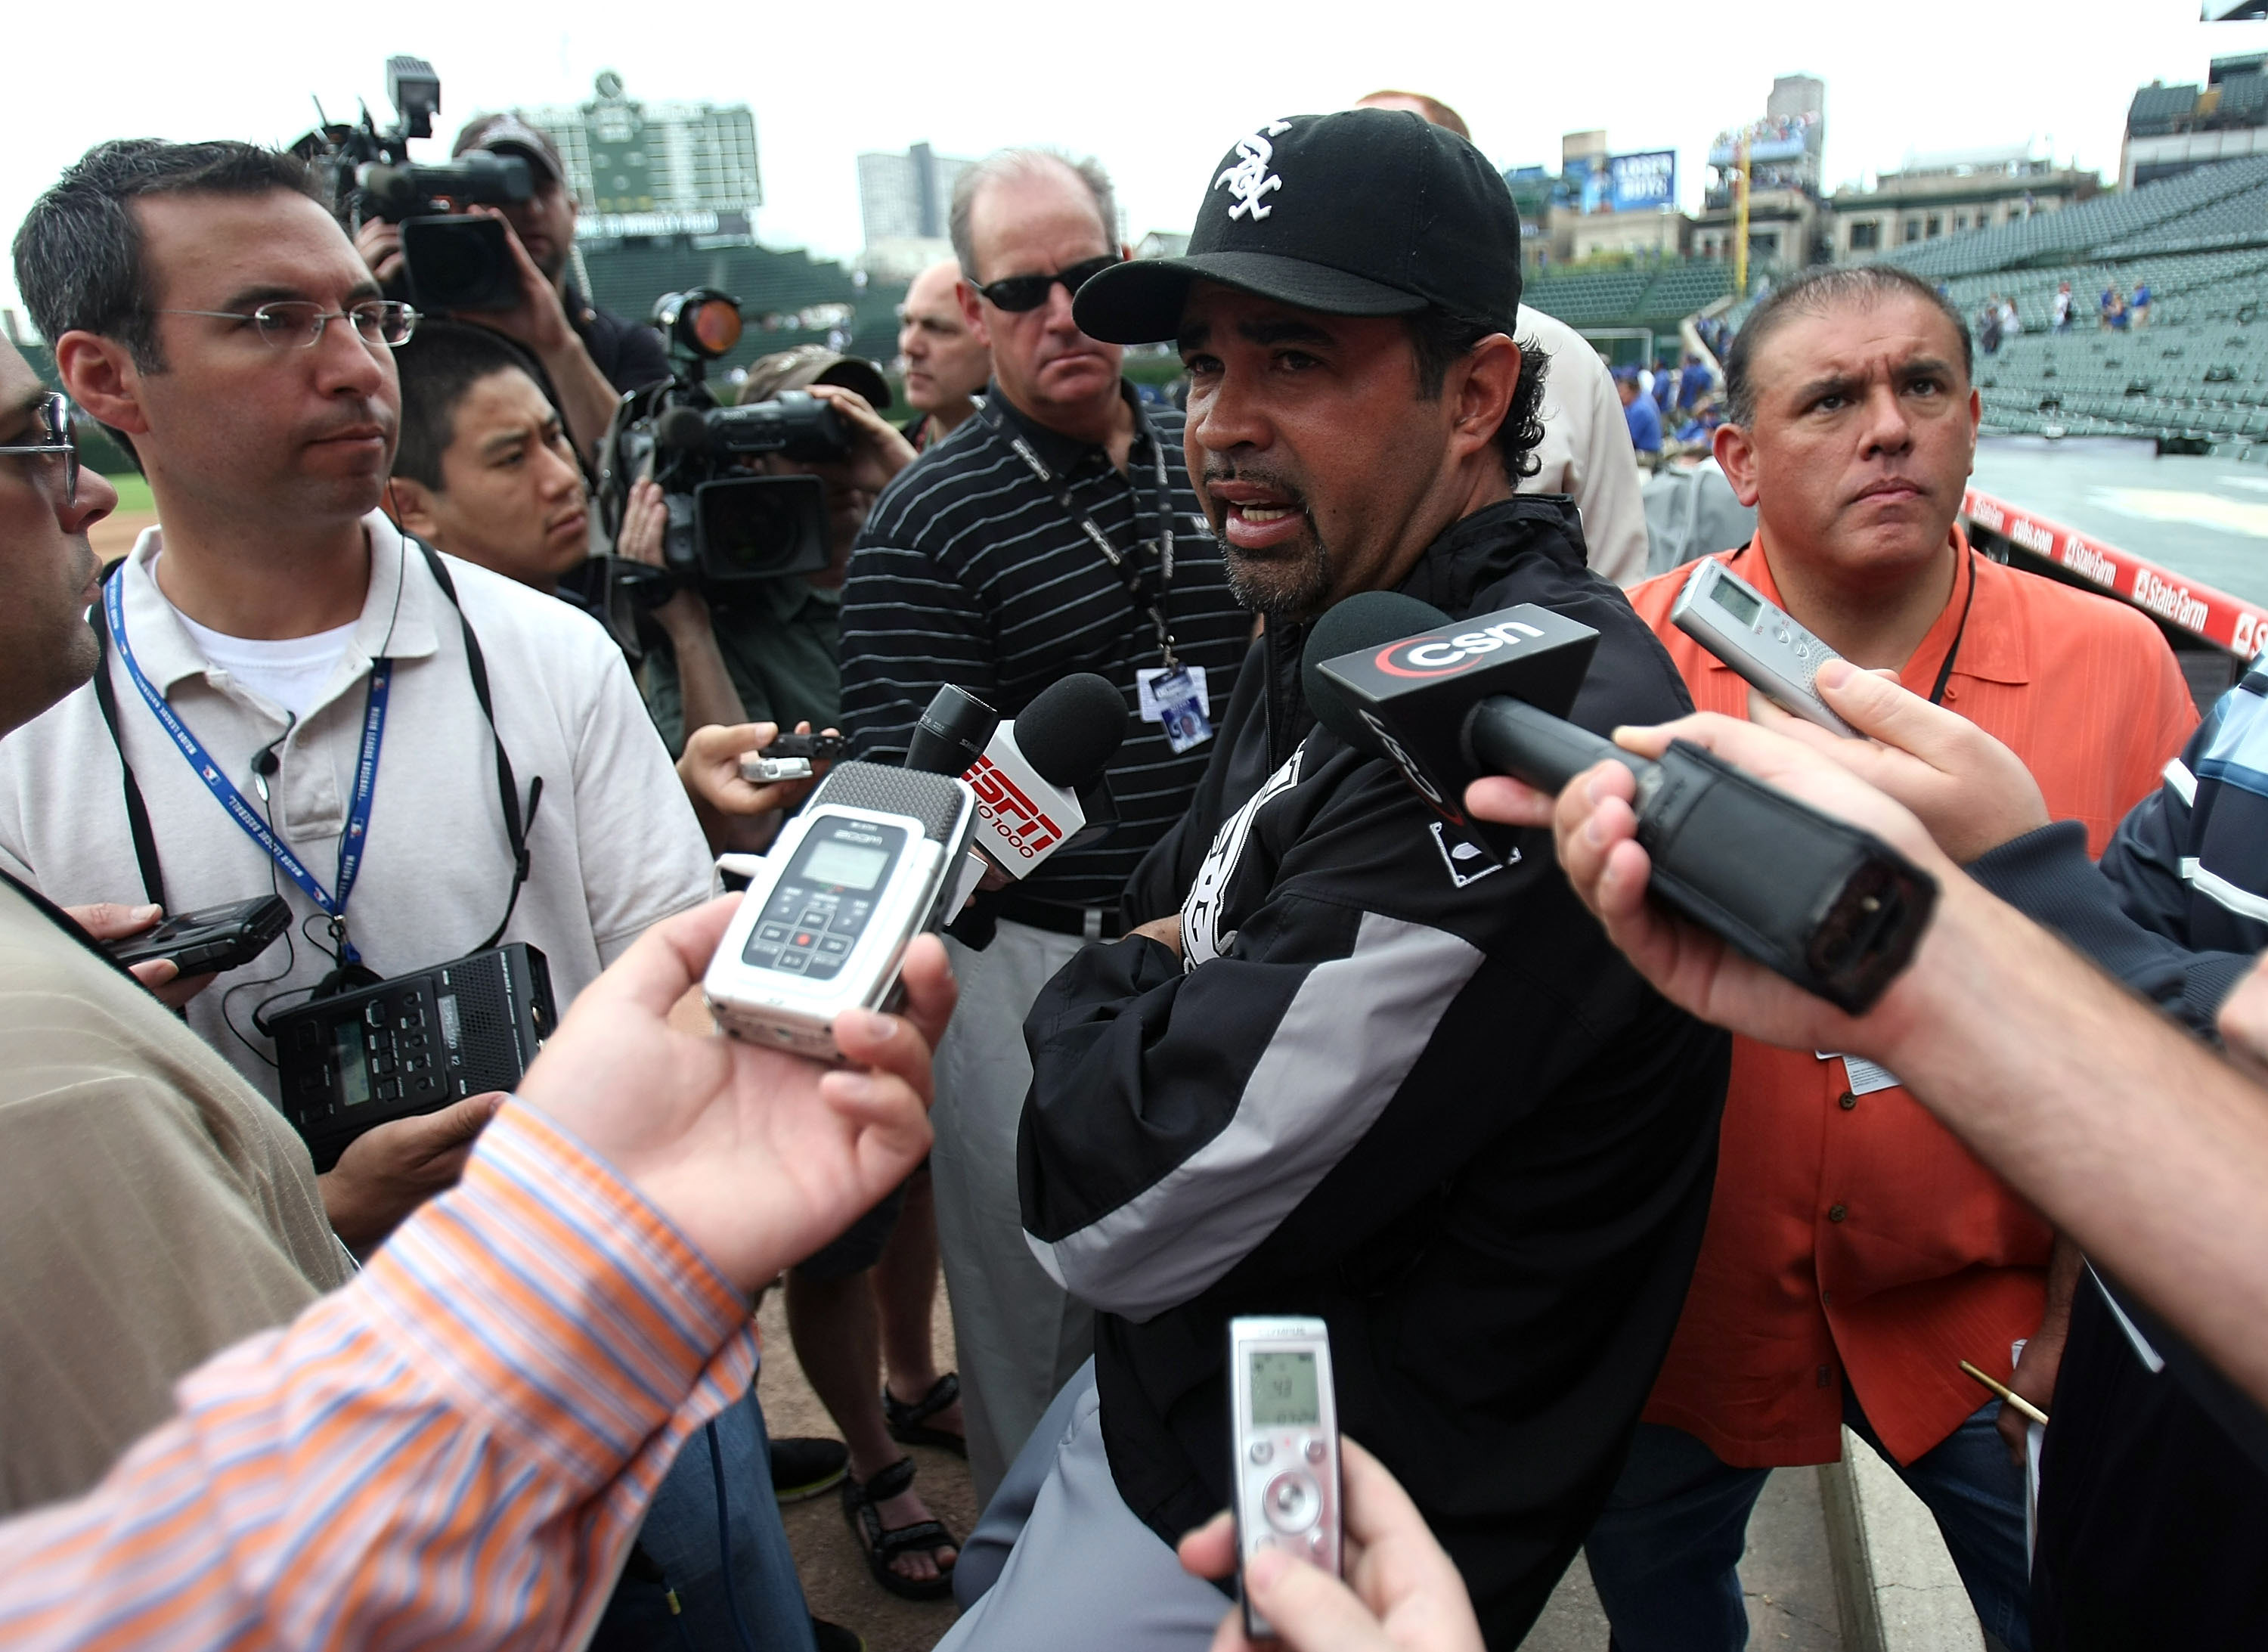 CHICAGO - JUNE 20: Manager Ozzie Guillen #13 of the Chicago White Sox talks to media members before a game against the Chicago Cubs on June 20, 2008 at Wrigley Field in Chicago, Illinois. (Photo by Jonathan Daniel/Getty Images)